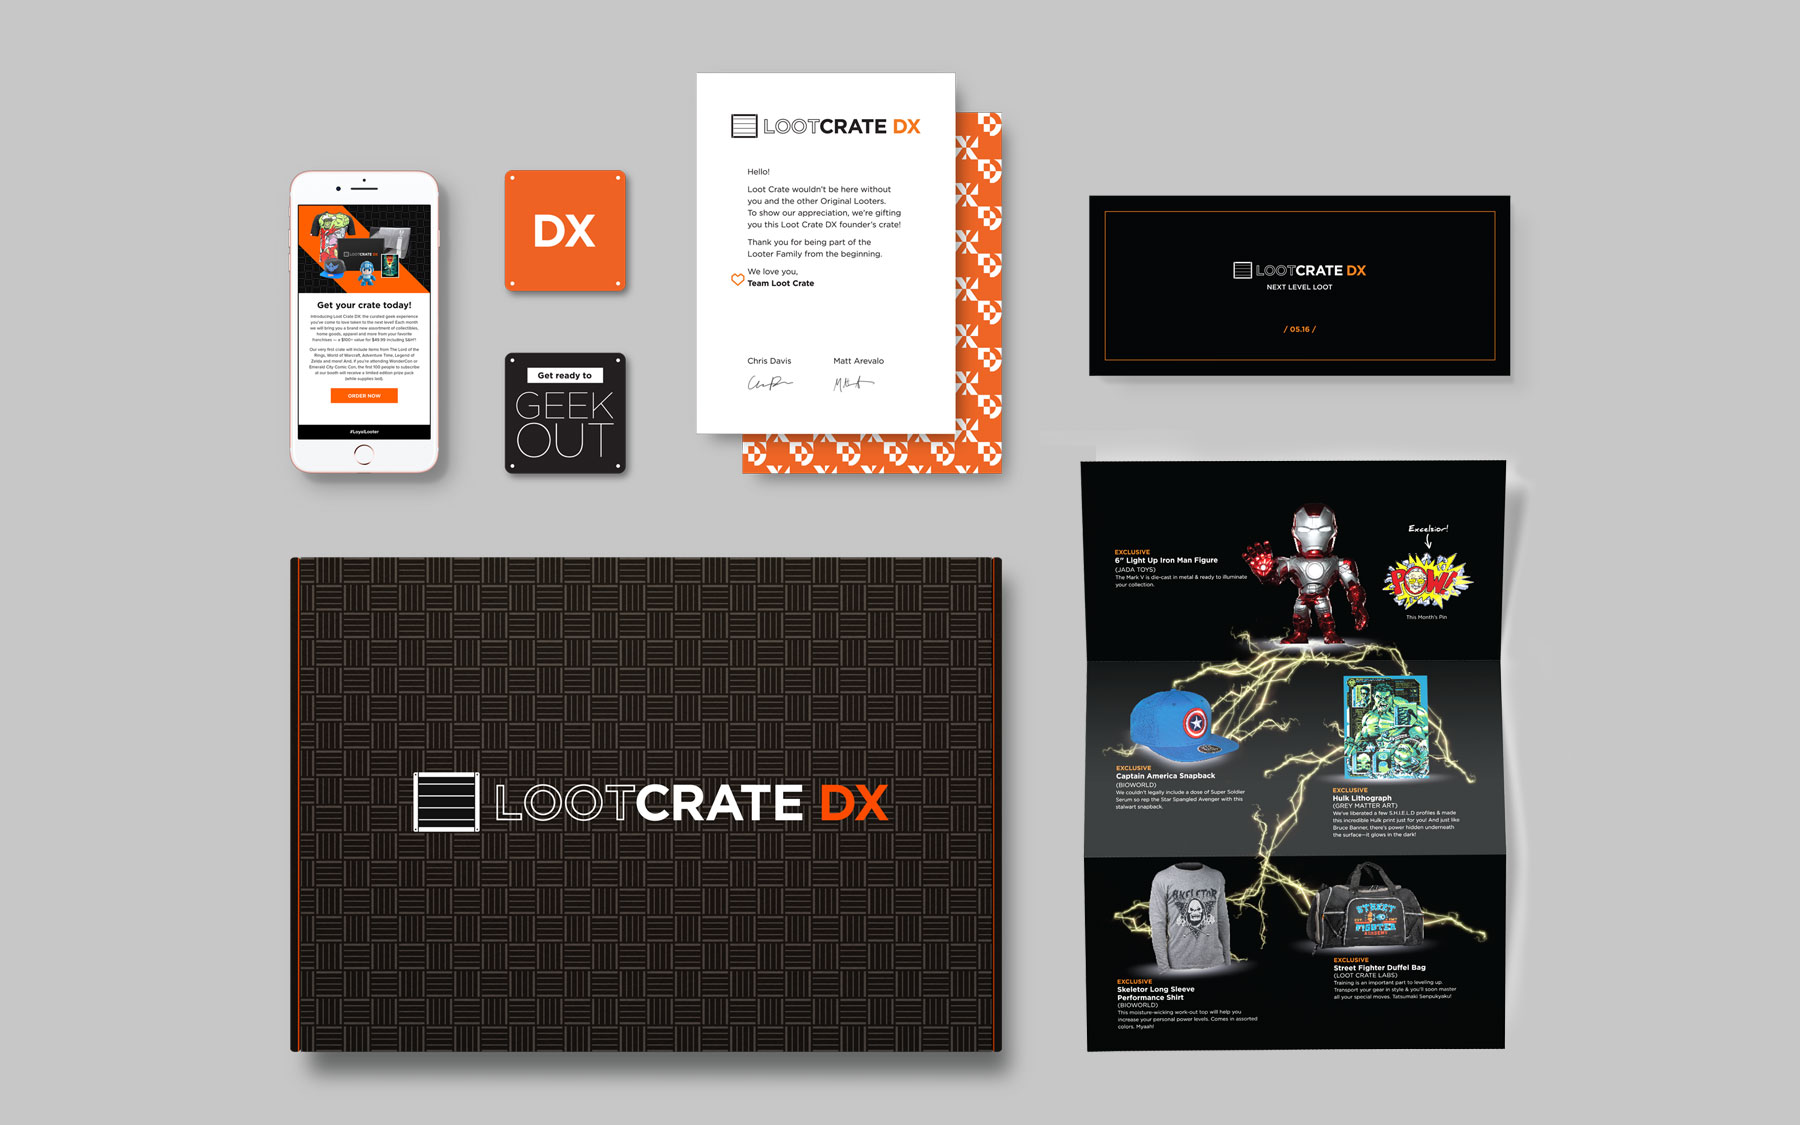 LootCrate DX Debut Box